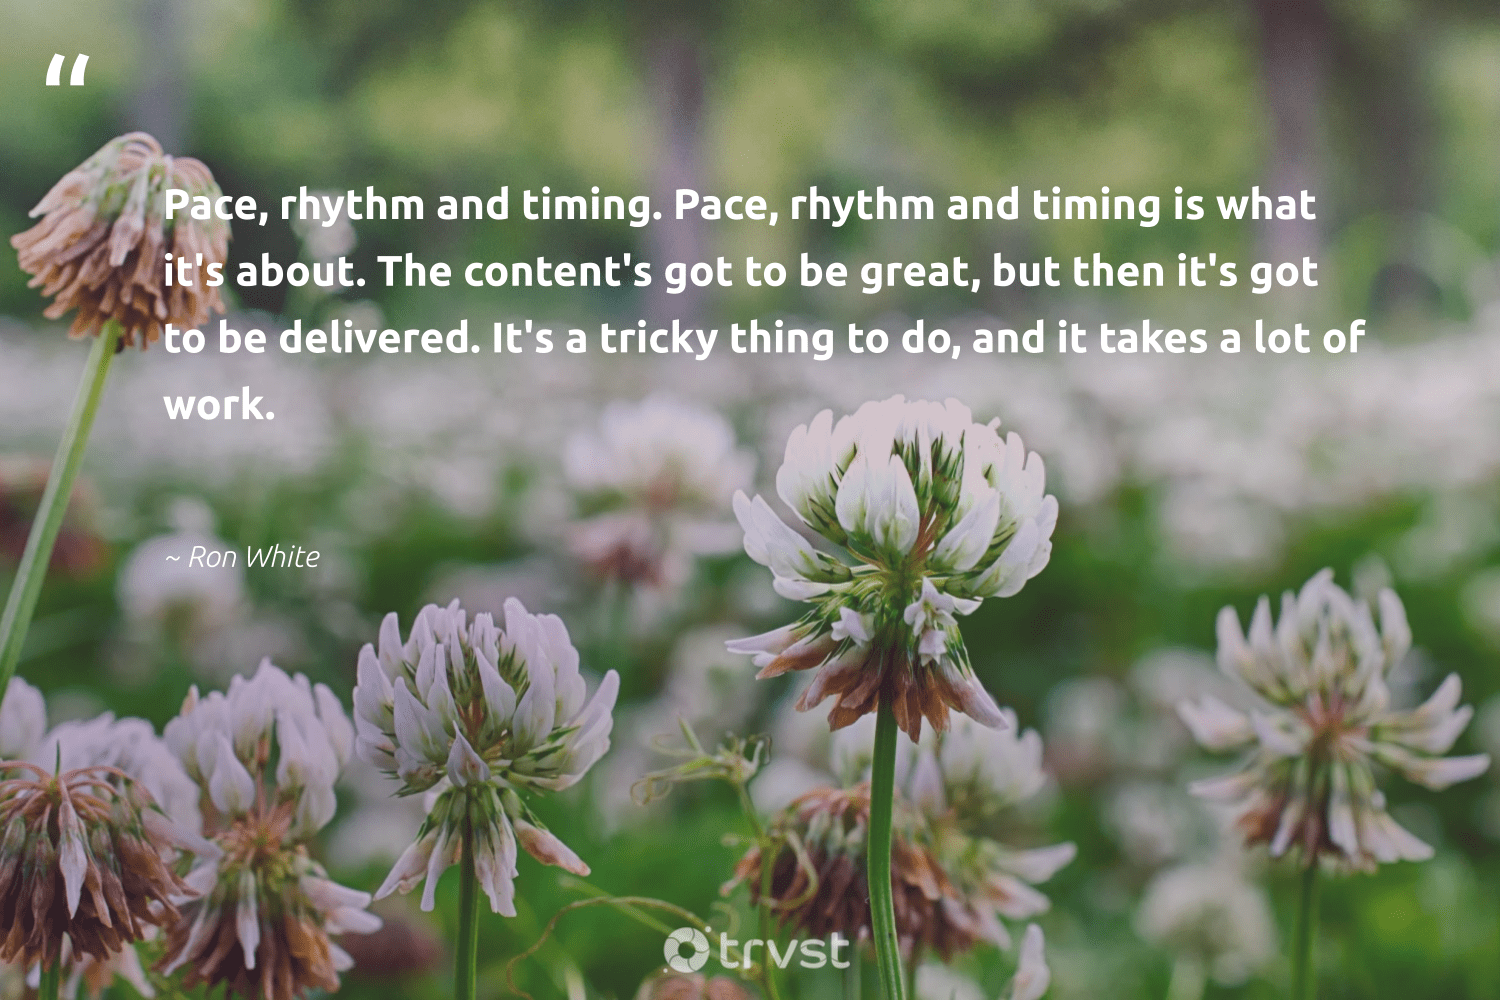 """Pace, rhythm and timing. Pace, rhythm and timing is what it's about. The content's got to be great, but then it's got to be delivered. It's a tricky thing to do, and it takes a lot of work.""  - Ron White #trvst #quotes #begreat #nevergiveup #bethechange #softskills #impact #futureofwork #dogood #thinkgreen #gogreen #planetearthfirst"